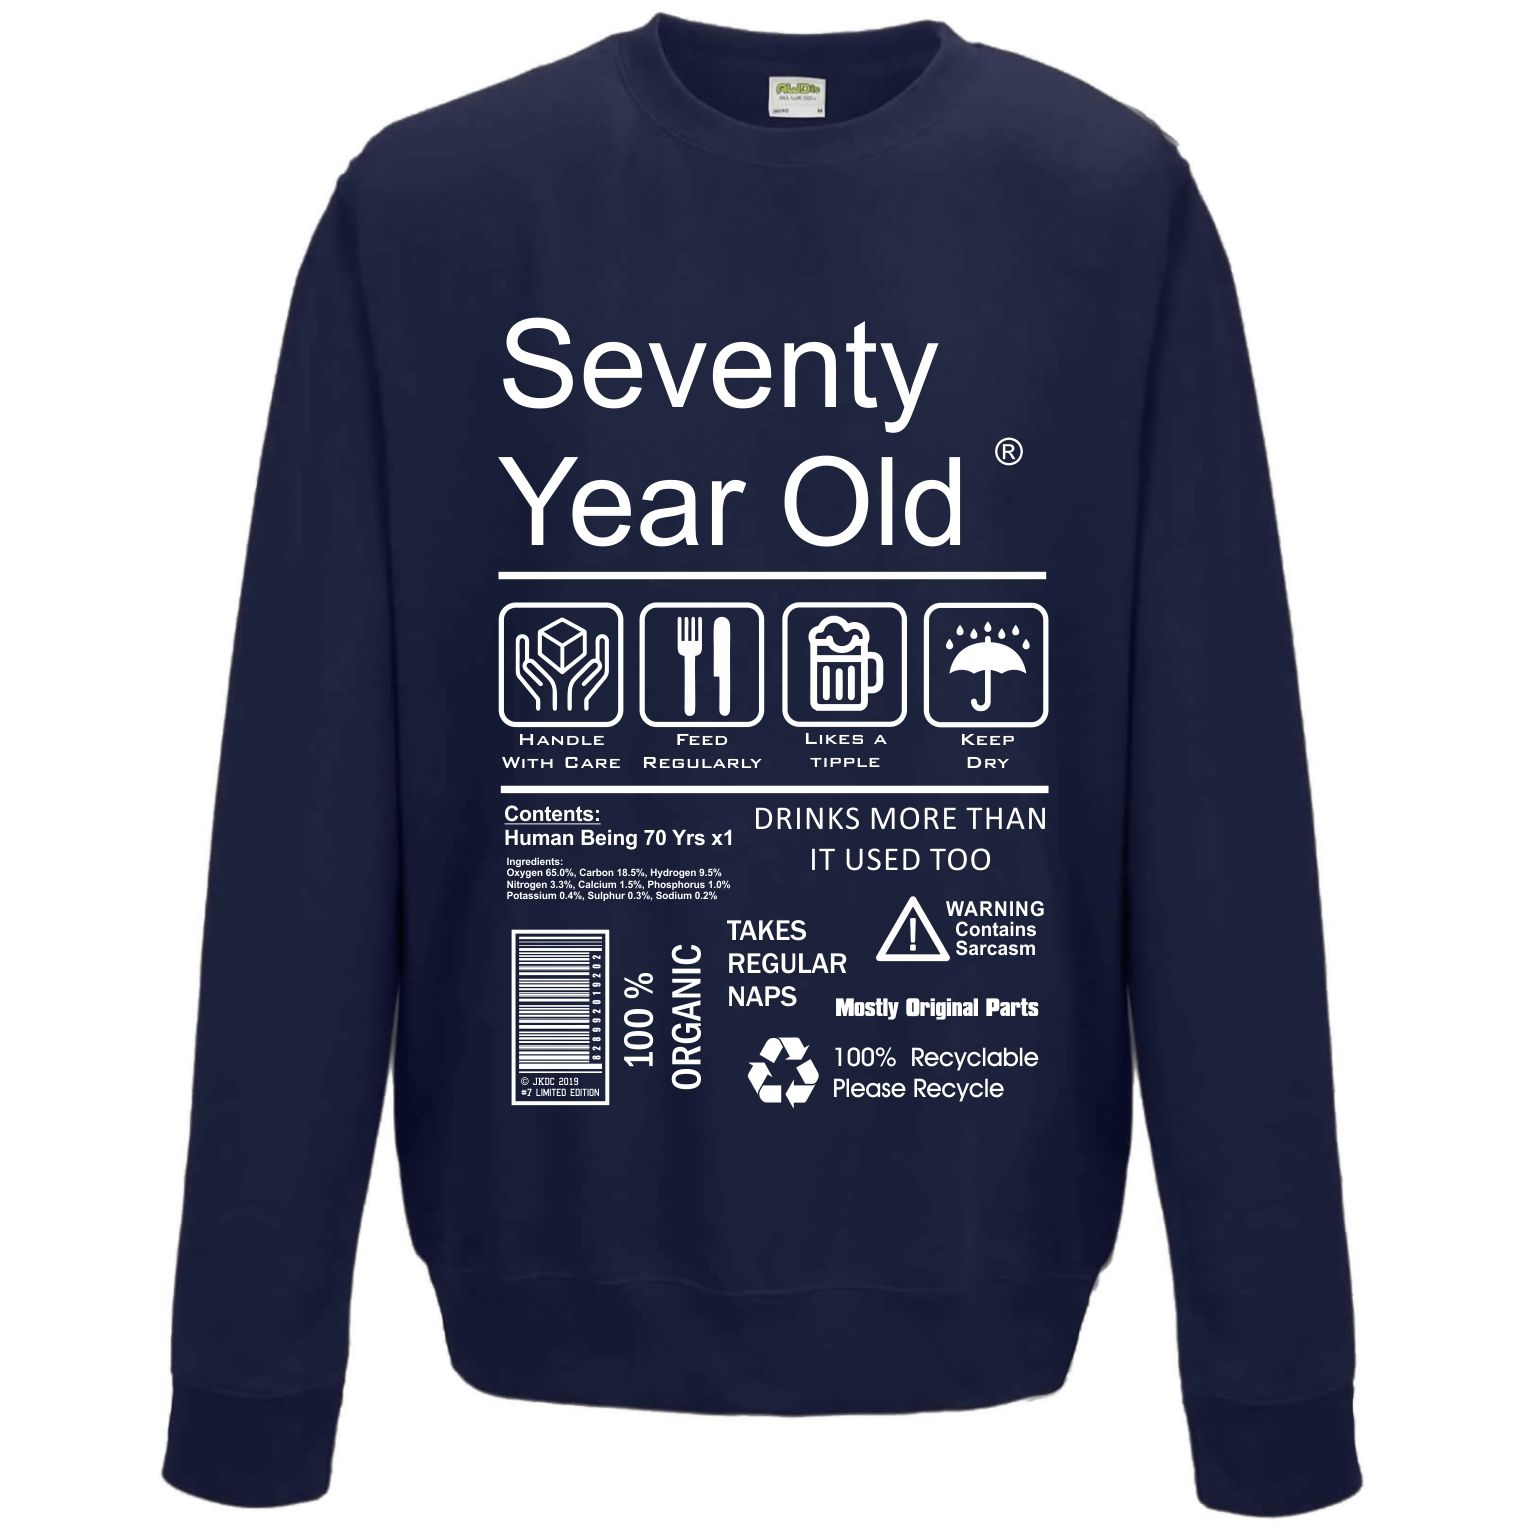 Funny 70 Year Old Package Care Label Instructions Motif 70th Birthday Gift Men S Sweatshirt Jumper